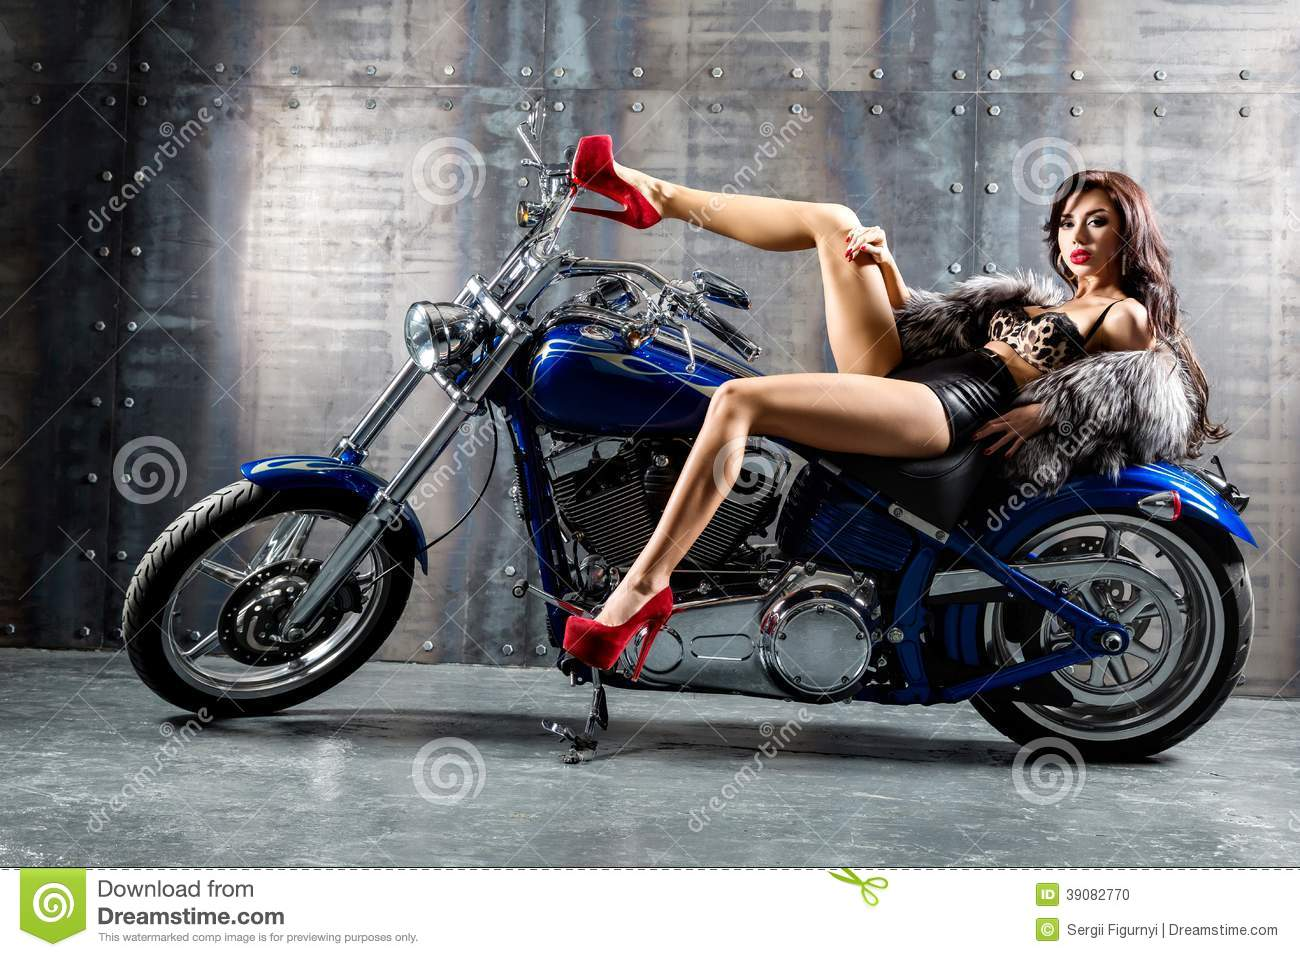 3d Wallpaper Motorcycle Wheelies Young Woman Sitting On Motorcycle Stock Photo Image Of